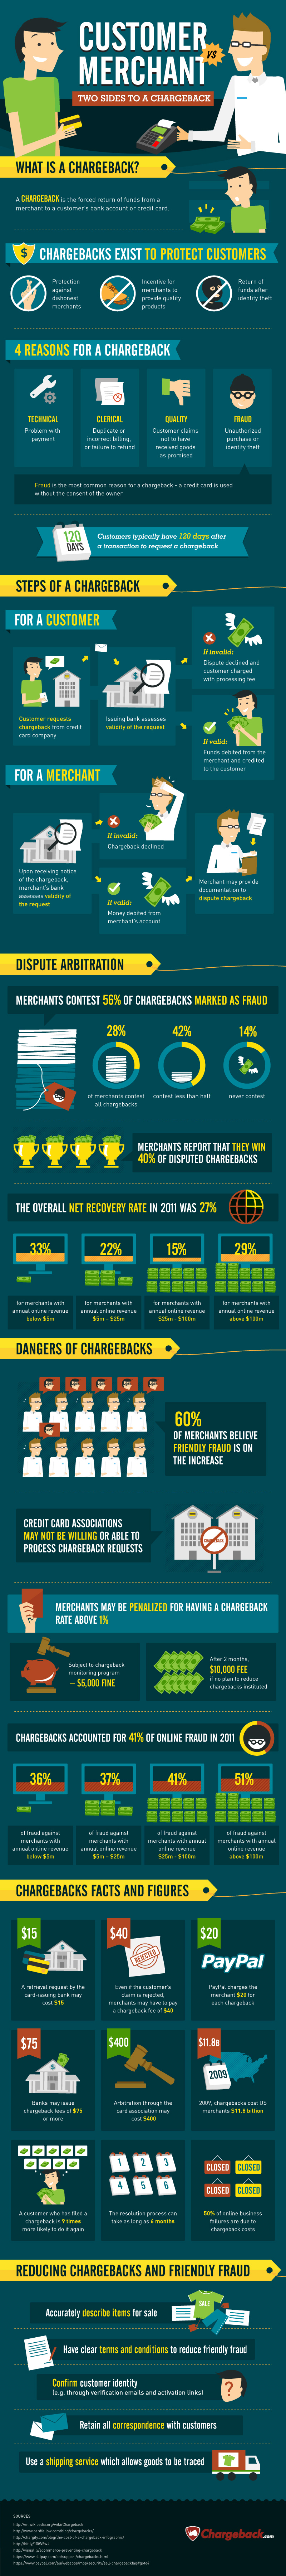 Merchant Vs. Customer: Two Sides to a Chargeback